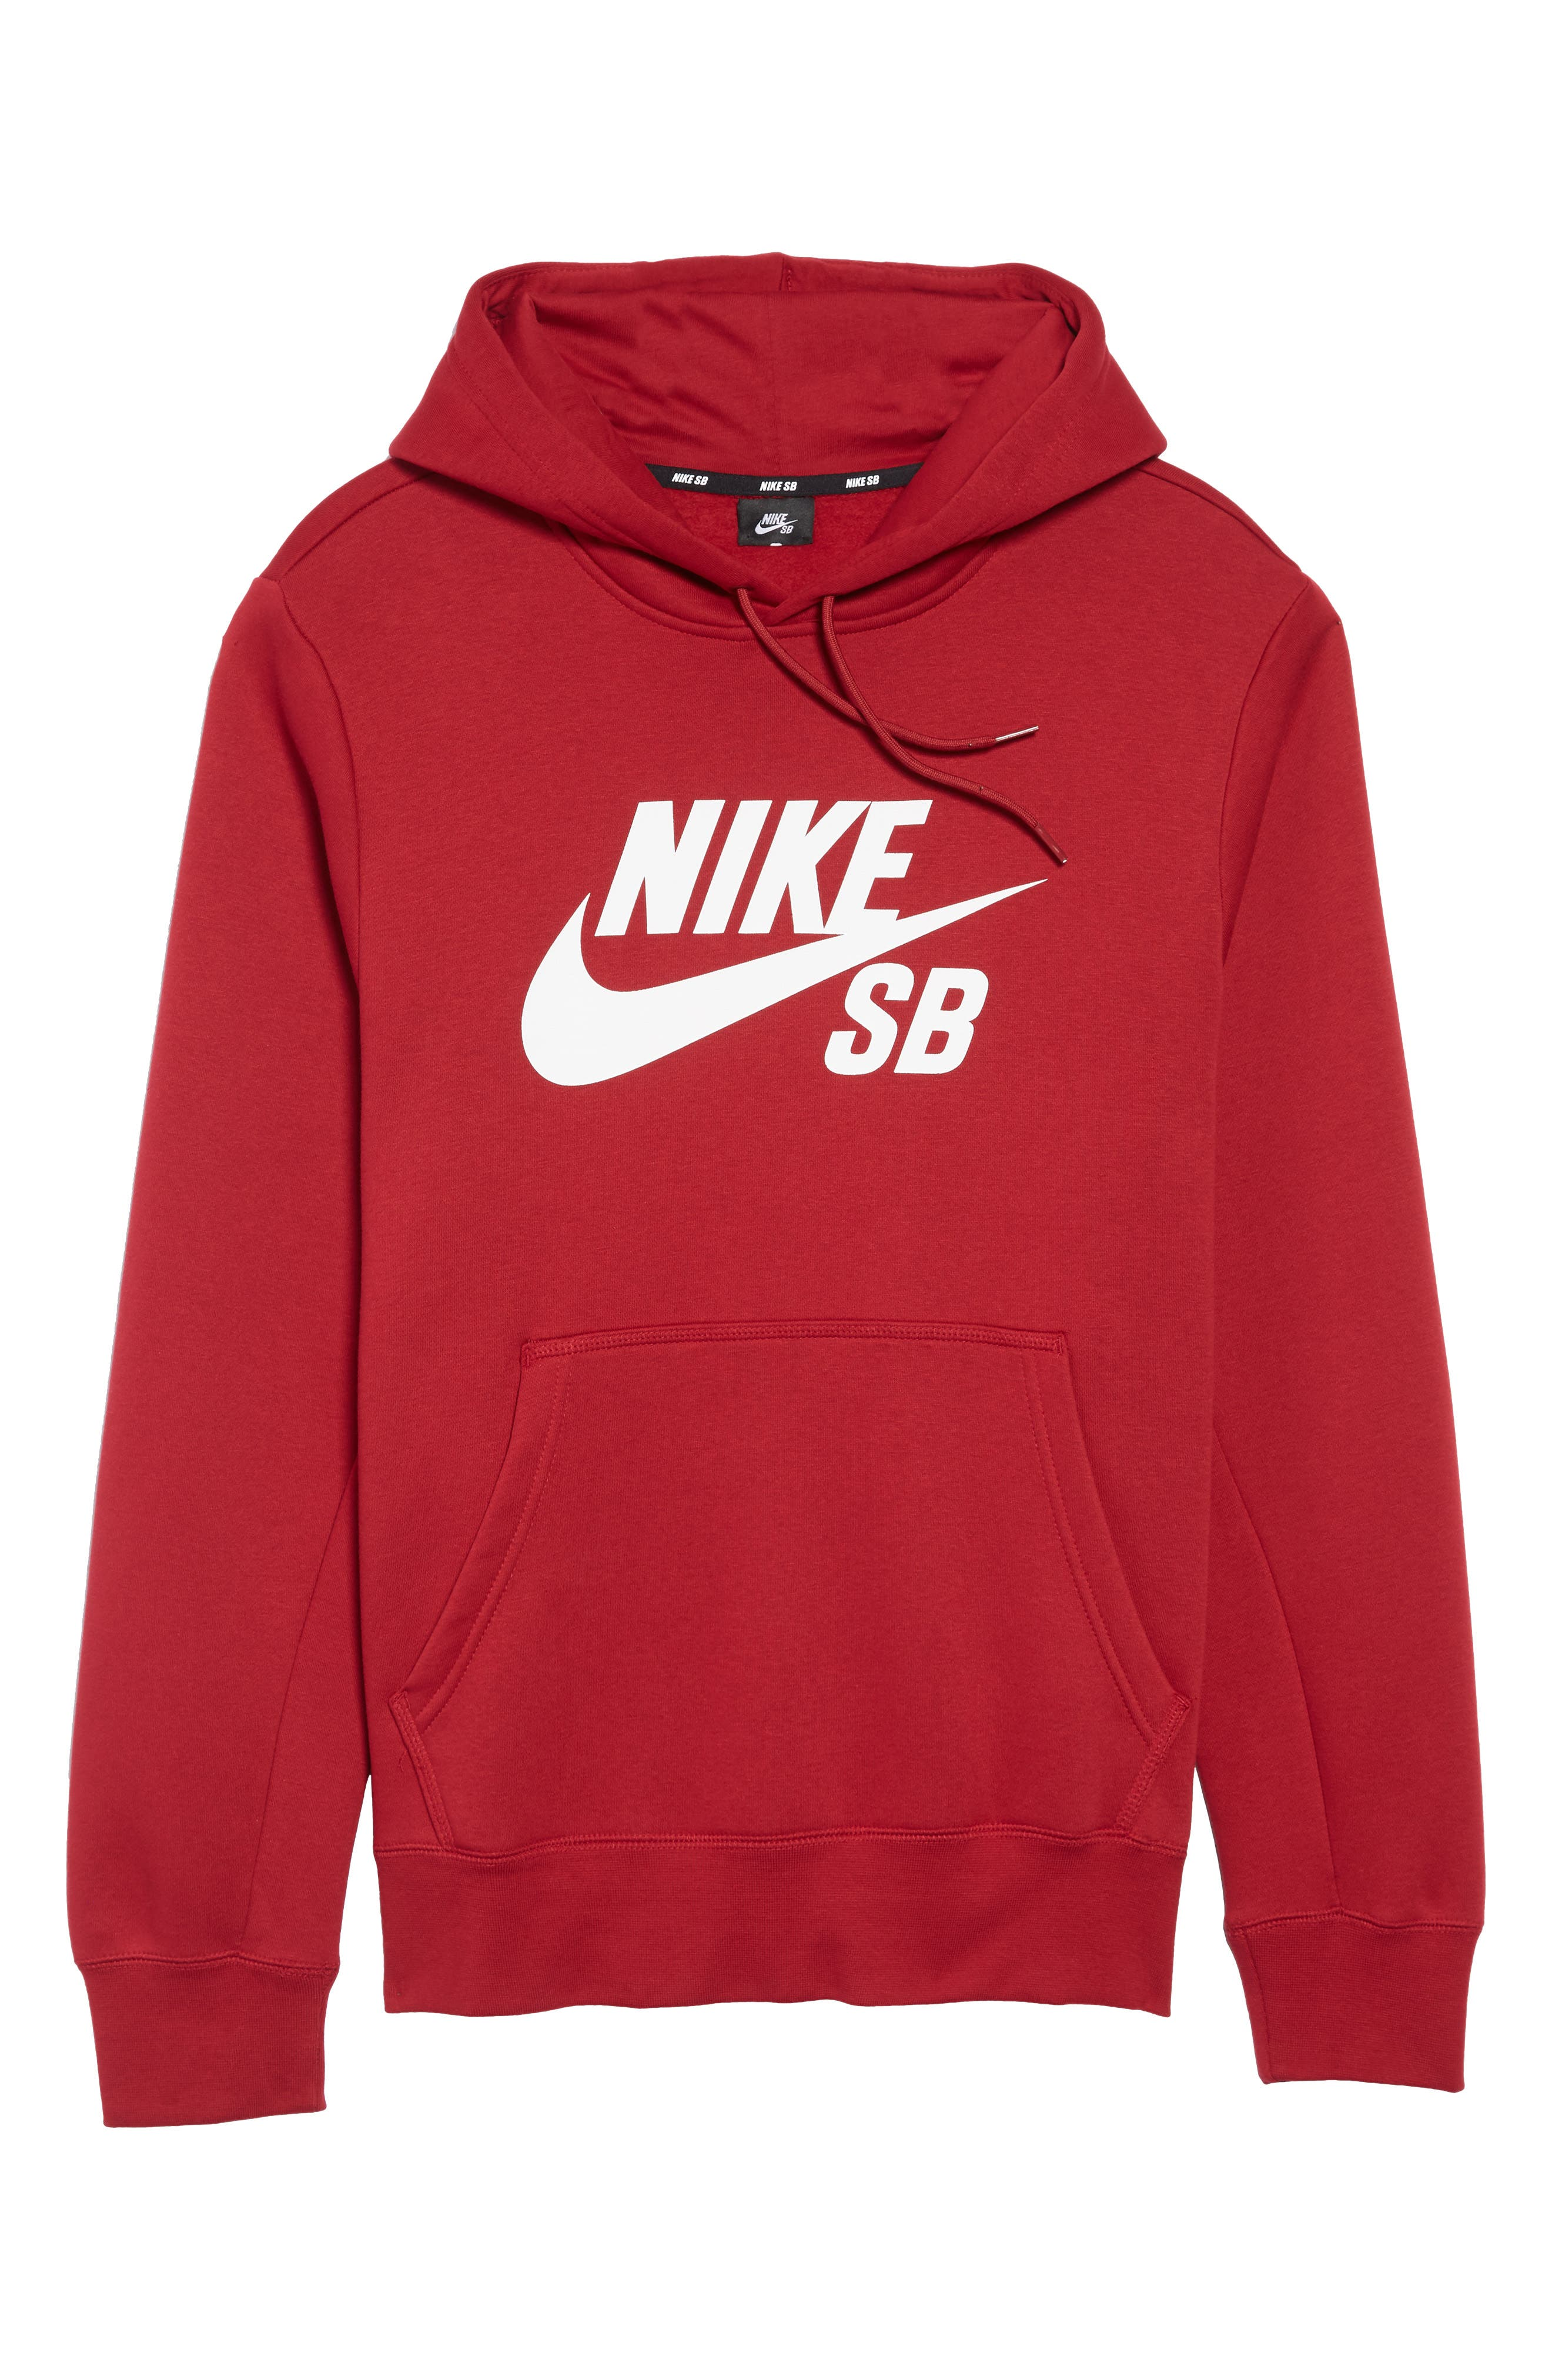 NIKE SB,                             Icon Essential Hoodie,                             Alternate thumbnail 6, color,                             RED CRUSH